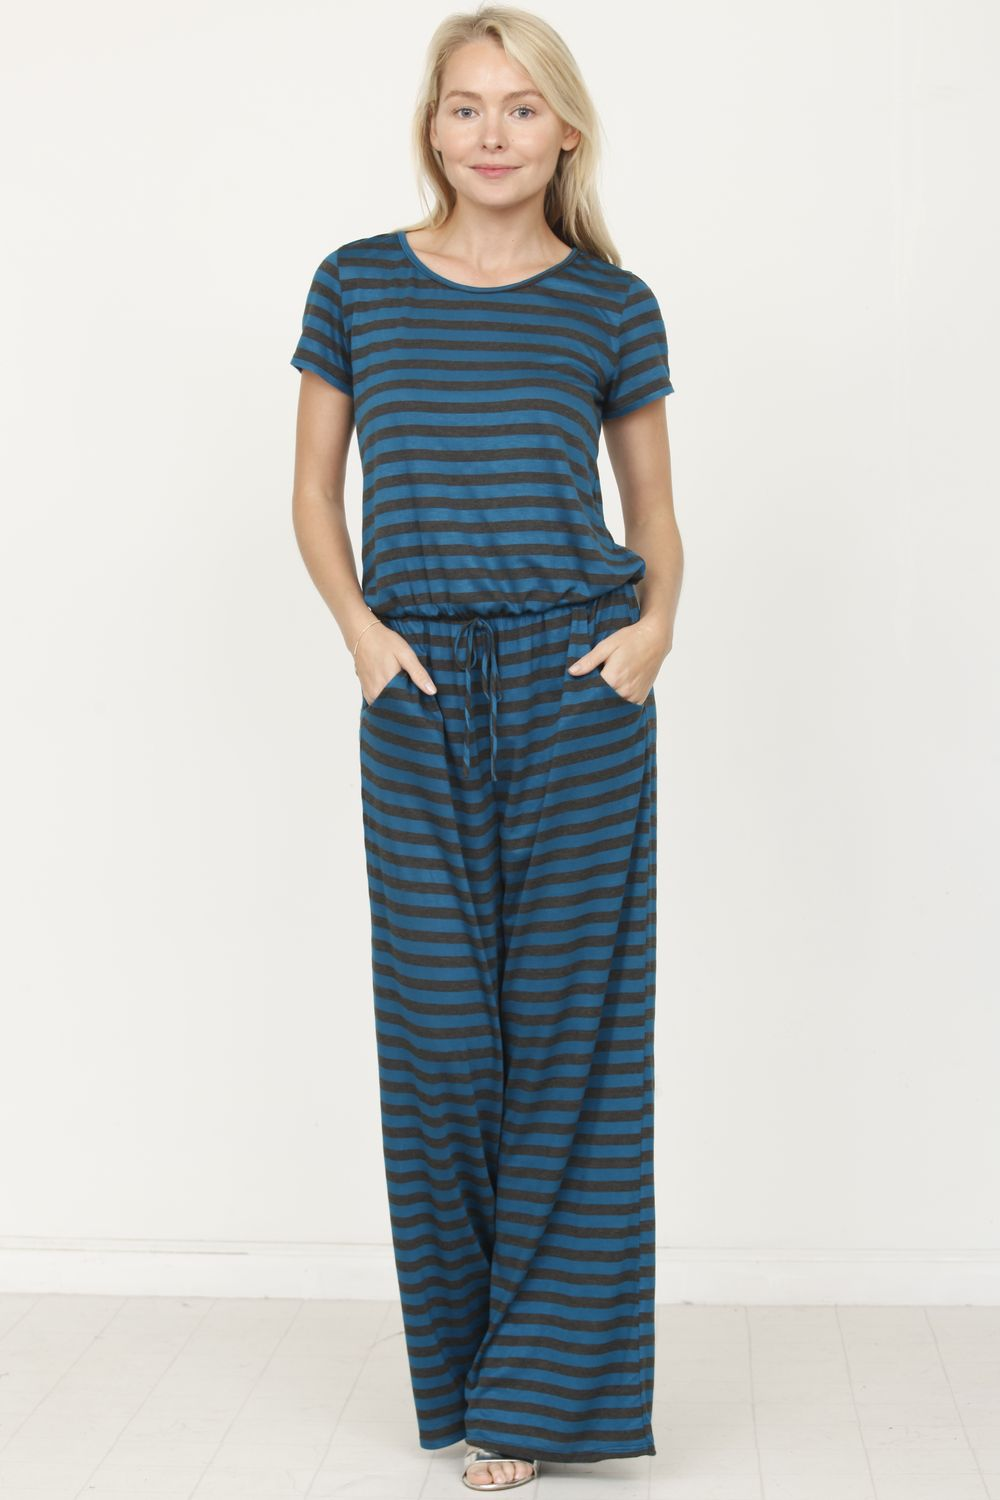 Teal Charcoal Stripe Short Sleeve Jumpsuit_Plus